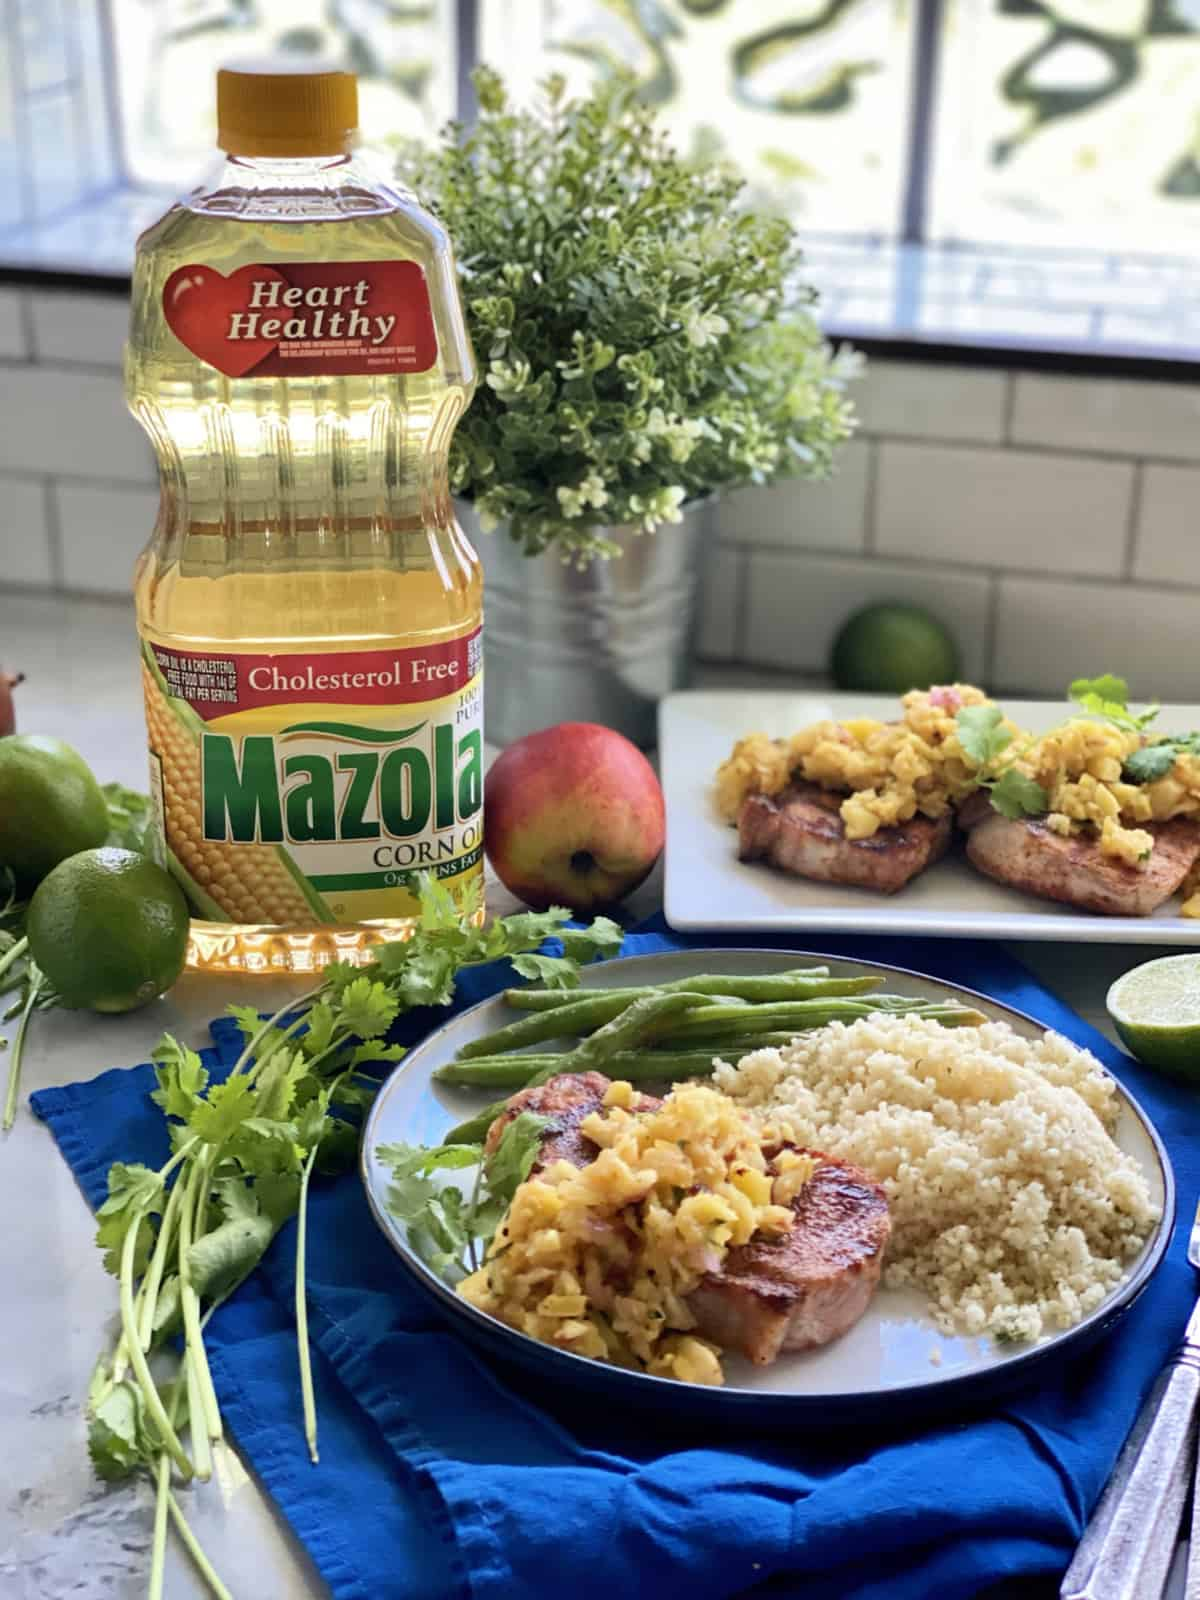 White plate filled with pork chops, fruit and couscous with a bottle of Mazola® Corn Oil in background.